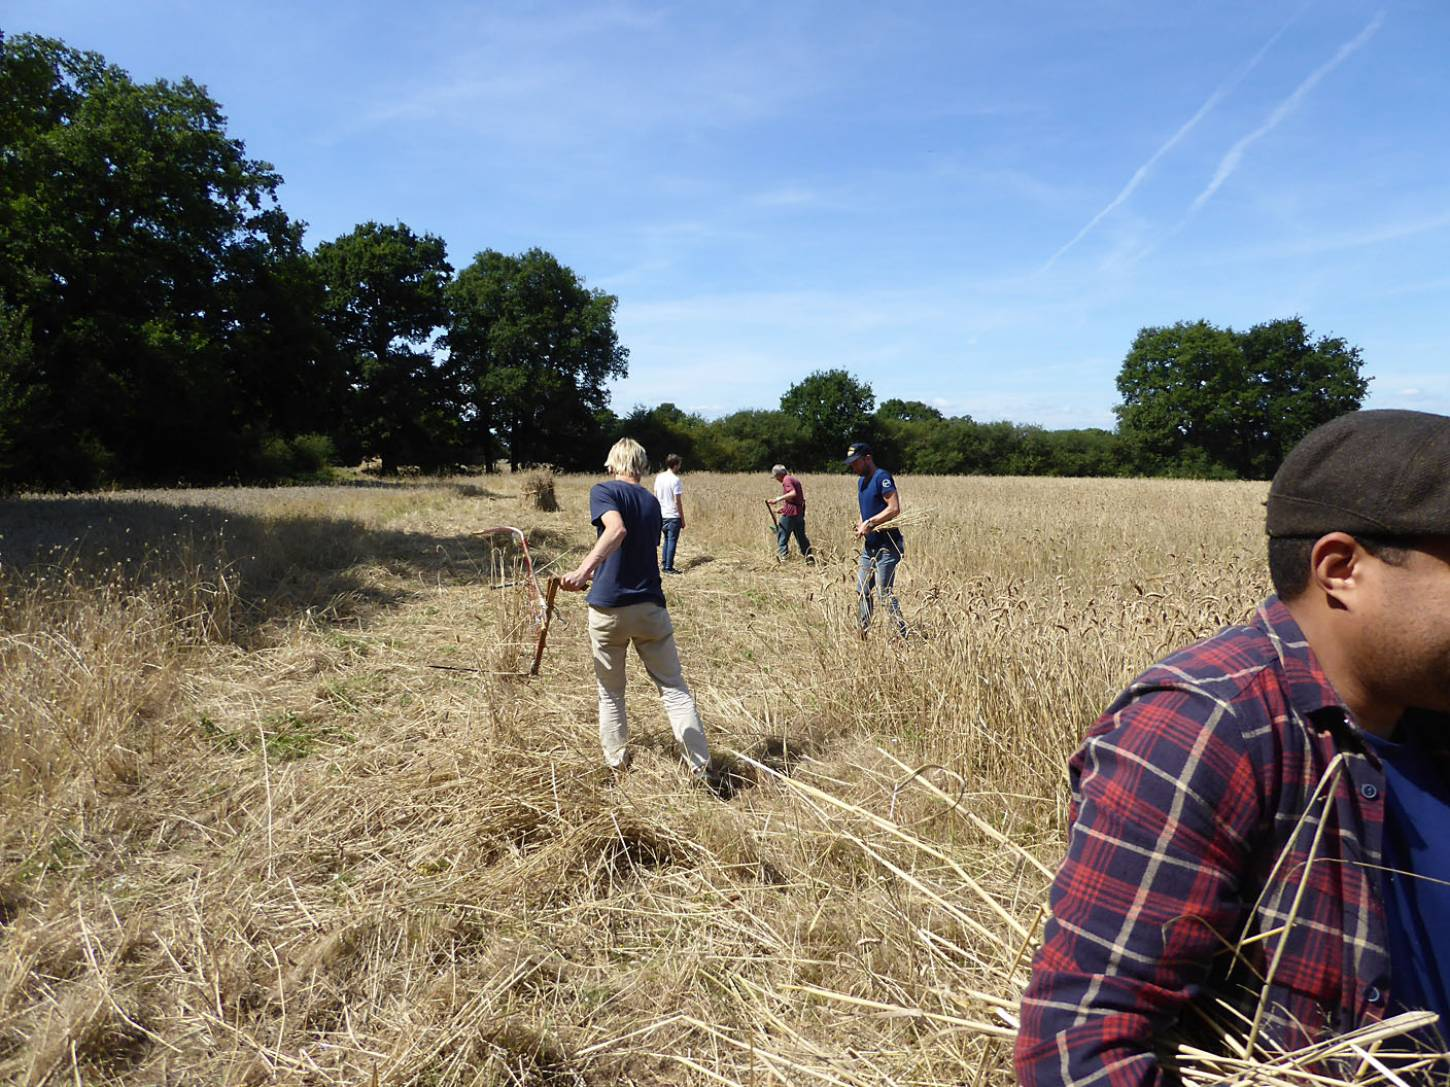 our manual harvest at Lodge Farm - 12:55pm&nbsp;13<sup>th</sup>&nbsp;Aug.&nbsp;'17